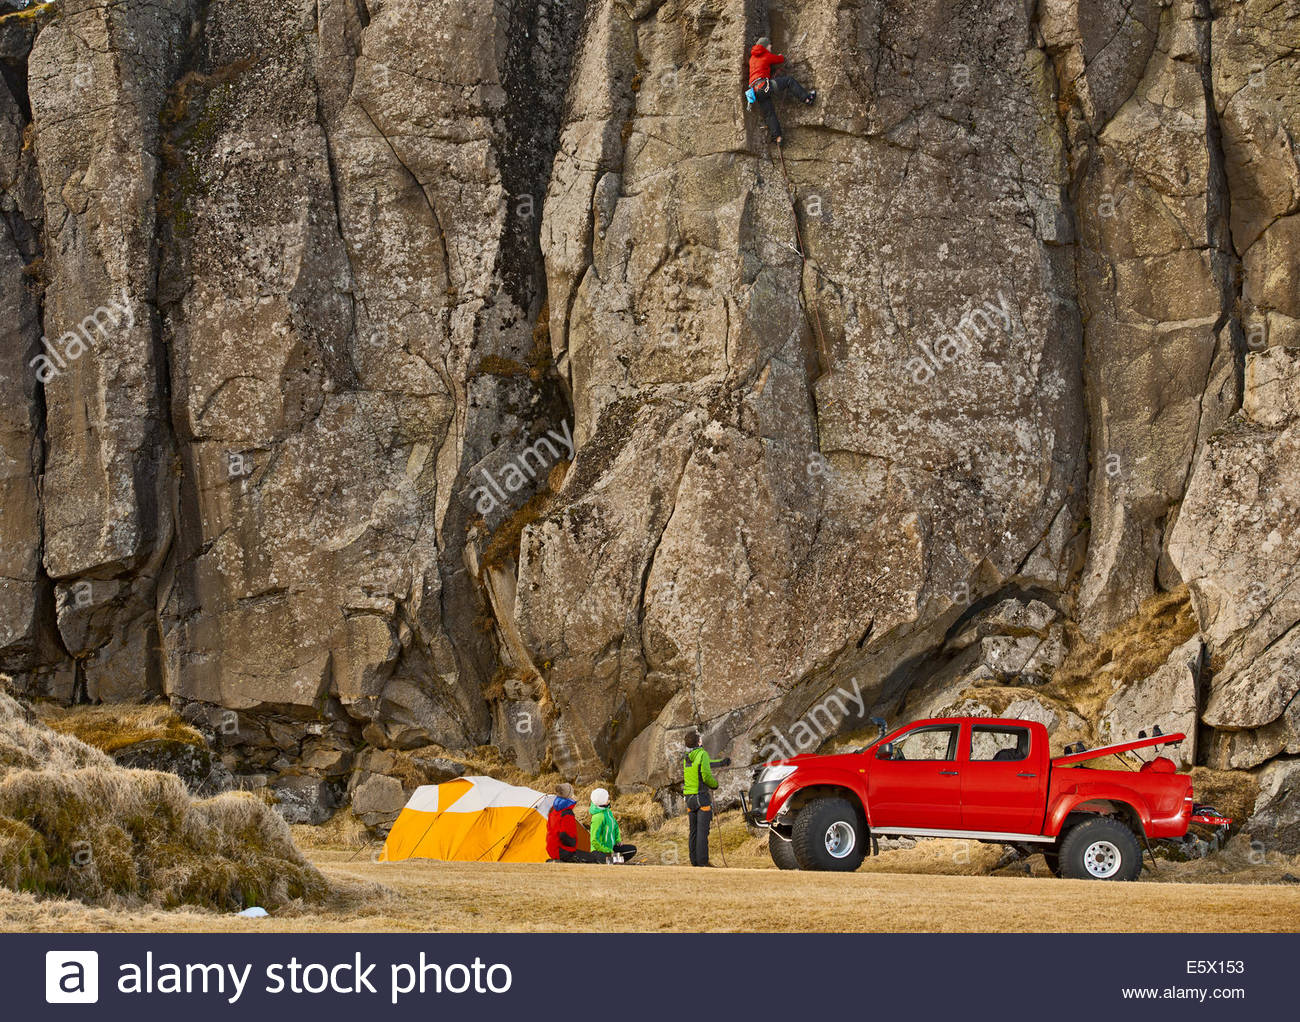 Male climber on sports climb, Hnappavellir, South East, Iceland - Stock Image